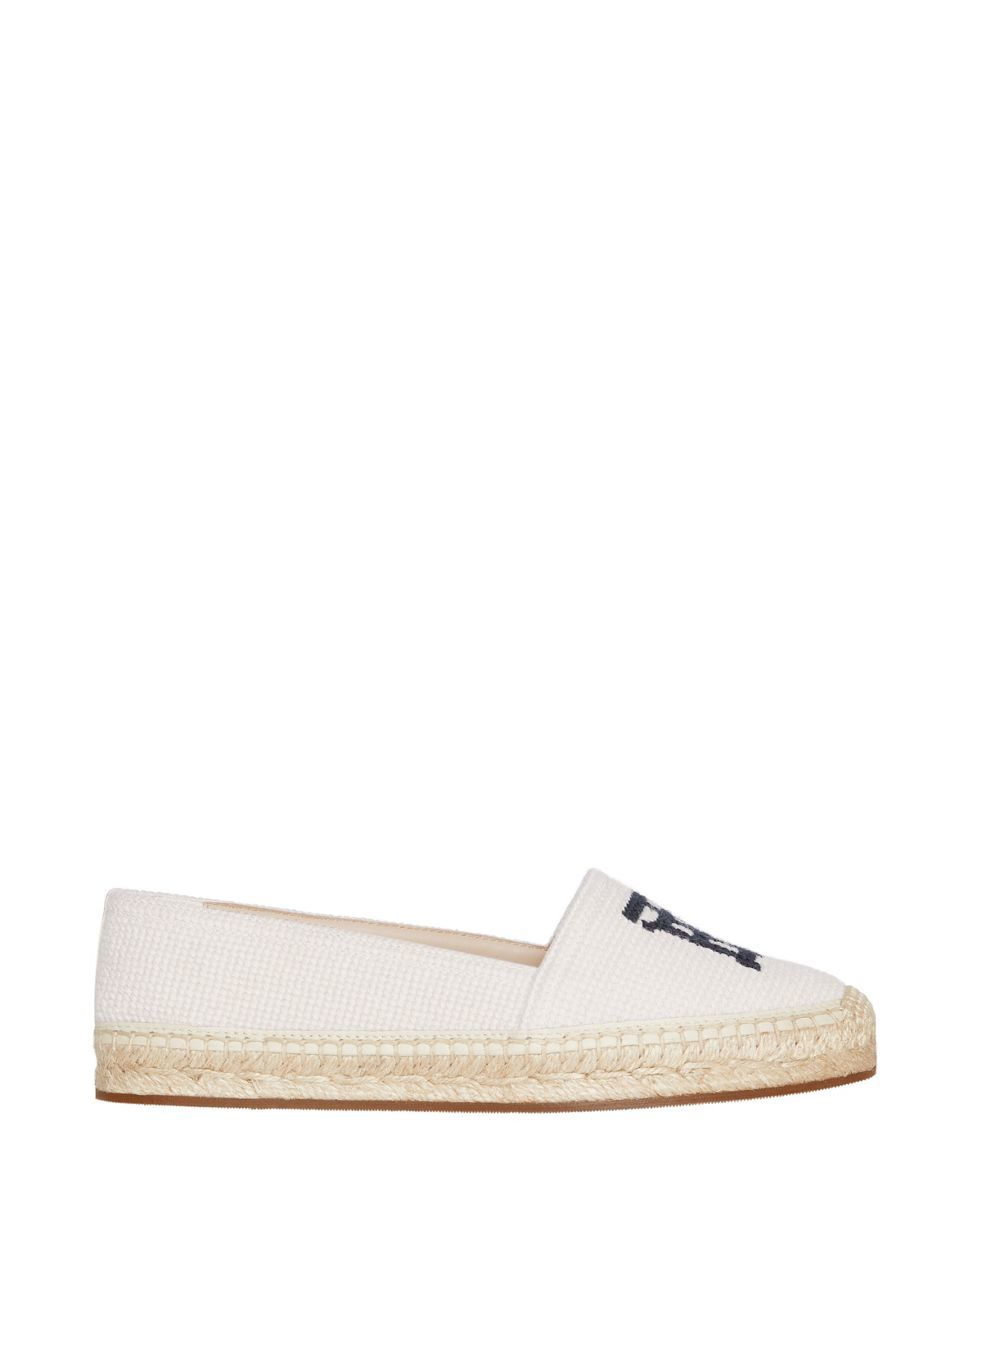 BURBERRY | Burberry Monogram Motif Cotton And Leather Espadrilles | Goxip